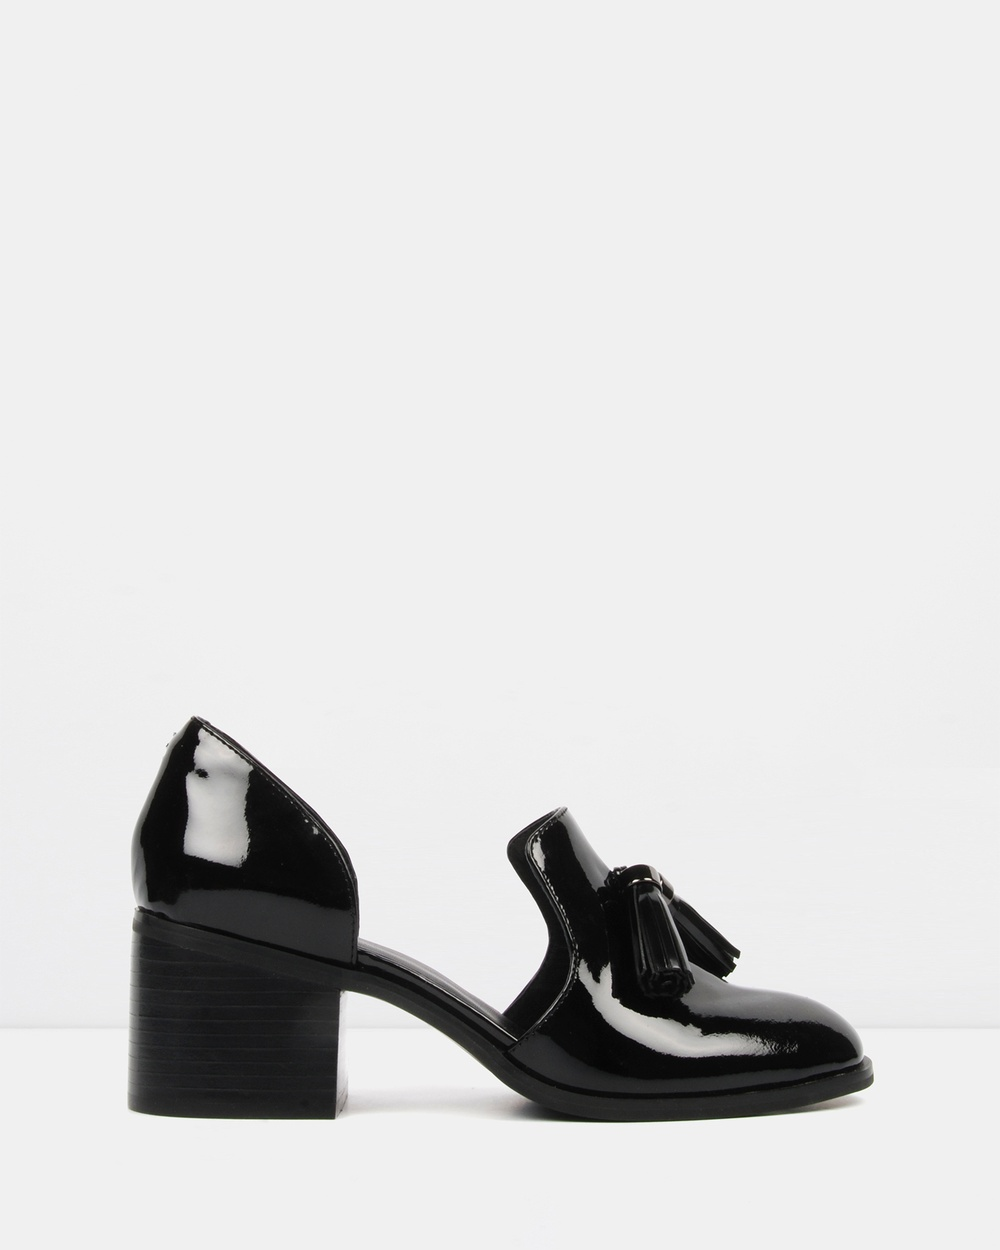 Jo Mercer Marie Mid Heel Shoes Mid-low heels Black Patent Marie Mid-Heel Shoes